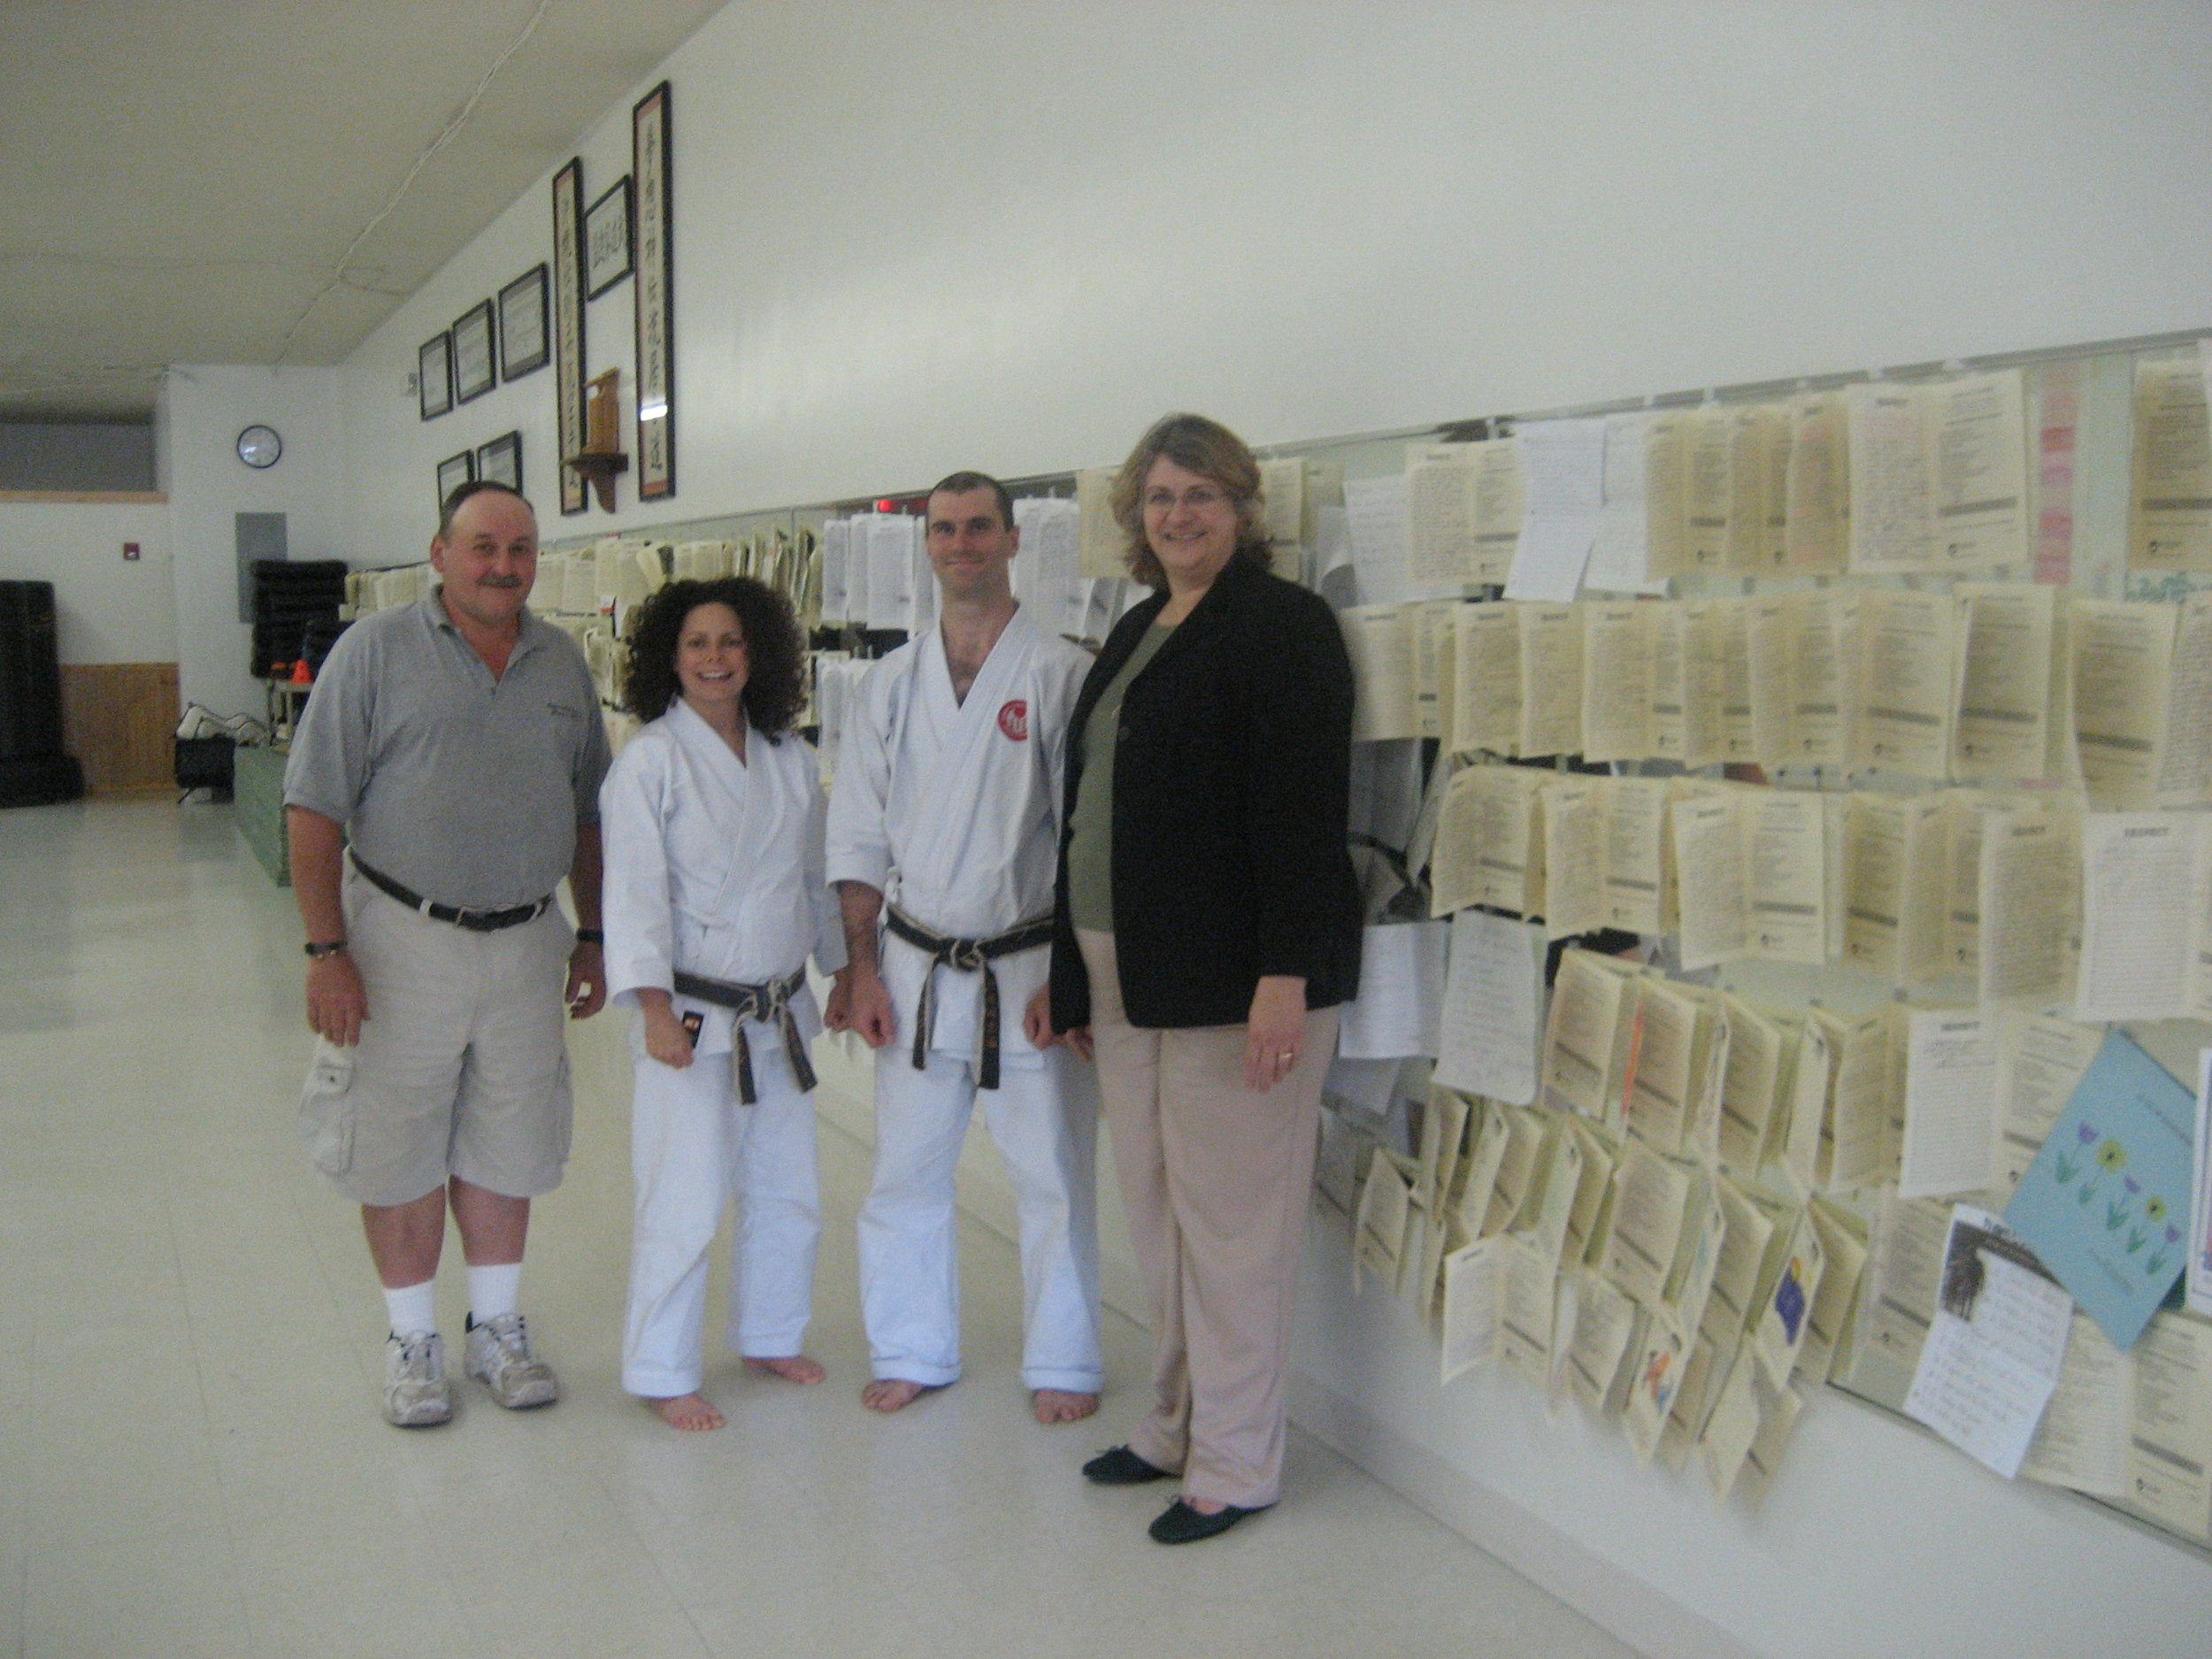 Members of the Rutherford Business improvement district and sensei dan rominski, wife kim christian with displayed Acts of Kindness journals 52,853 logged random acts of kindness.